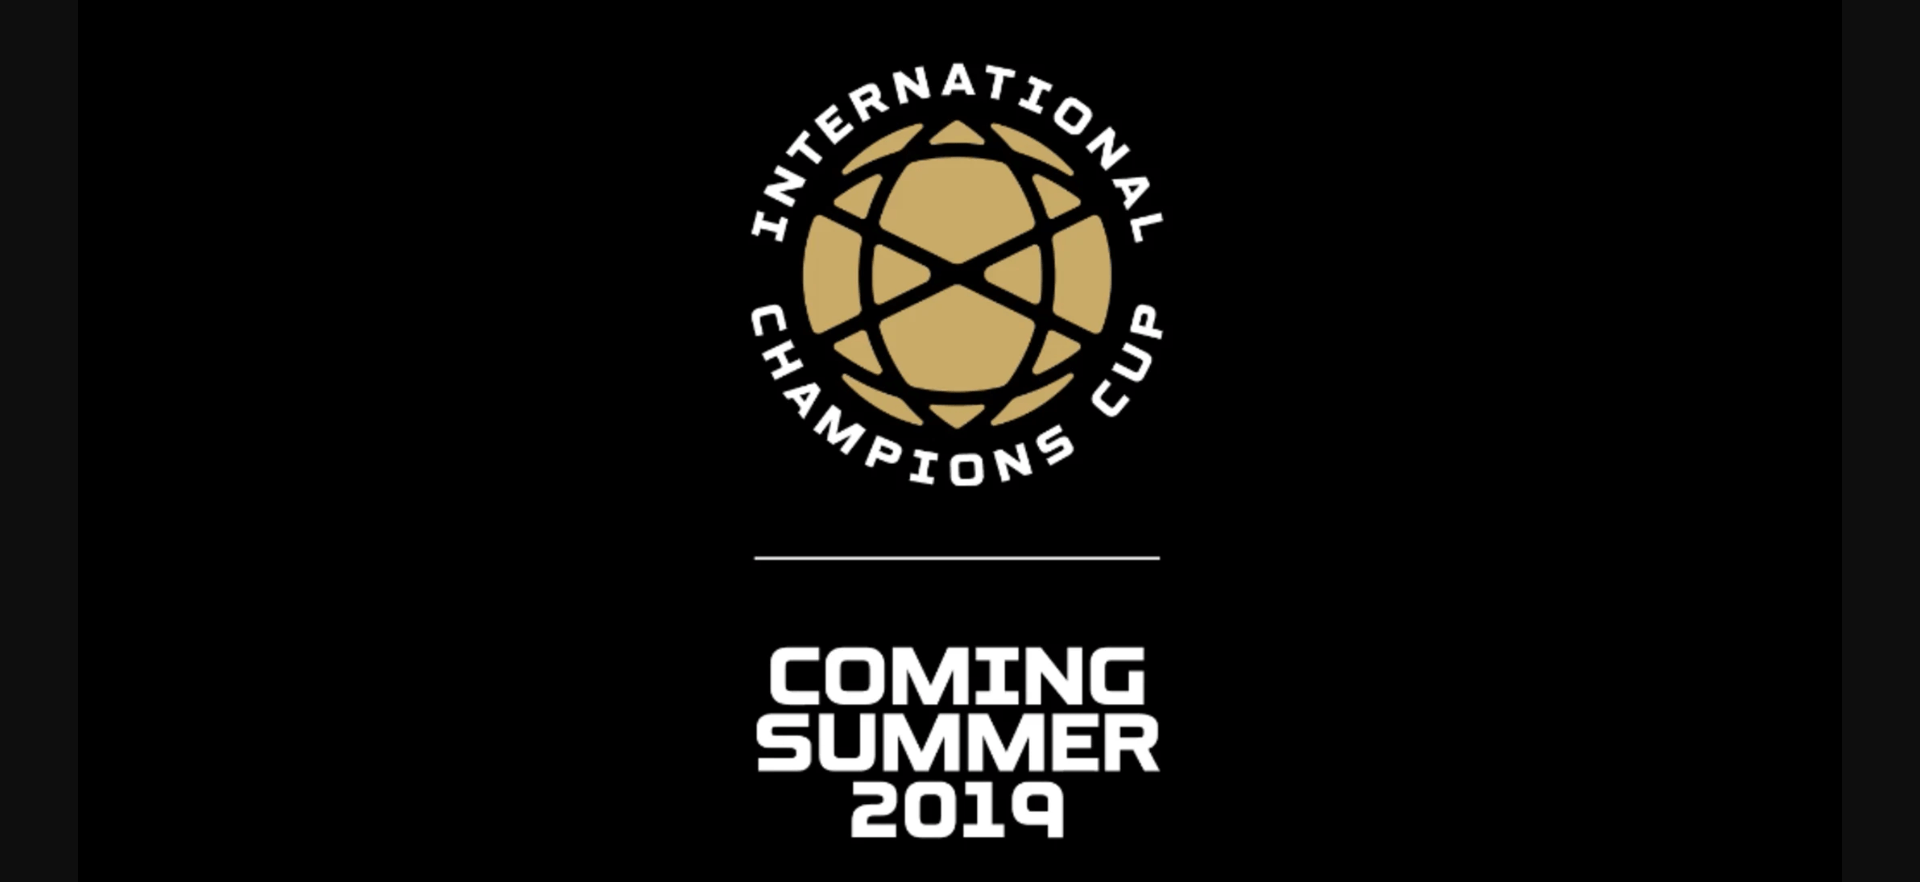 international champions cup 2019 juventus